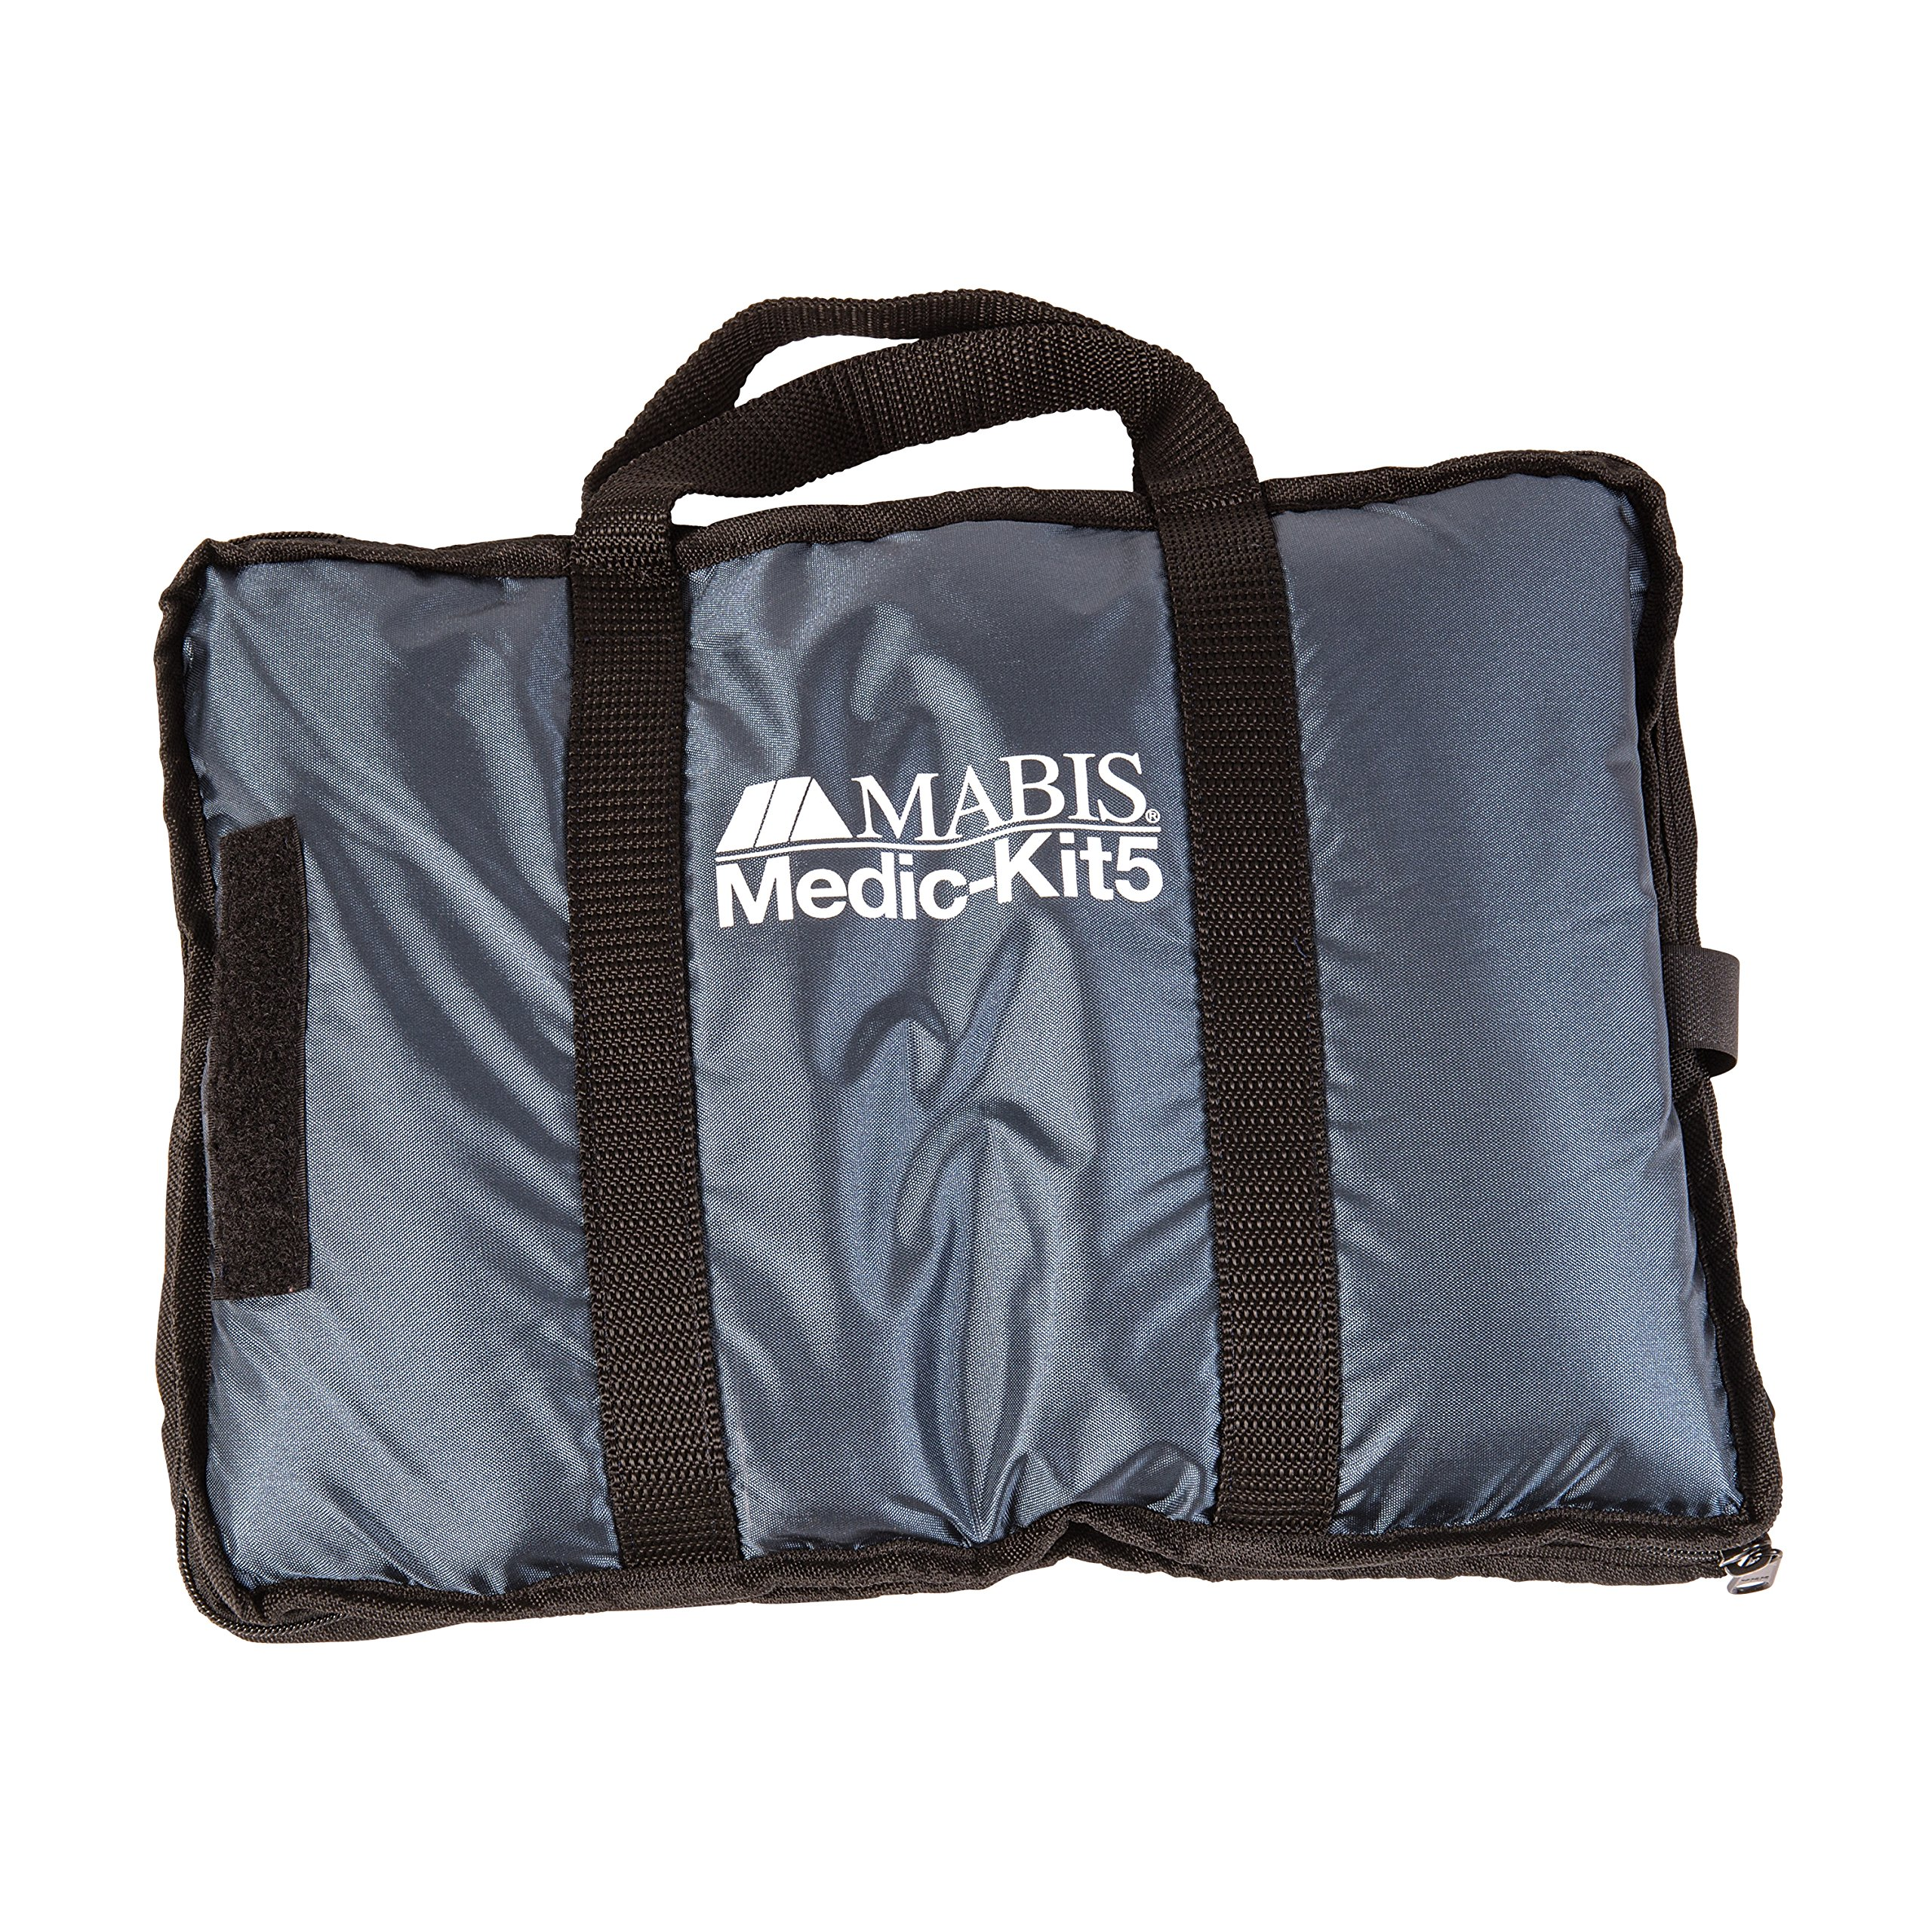 MABIS Medic-Kit5 EMT and Paramedic First Aid Kit with 5 Calibrated Nylon Blood Pressure Cuffs, Sizes Included: Large Adult, Adult, Child, Infant and Thigh, Blue by MABIS DMI Healthcare